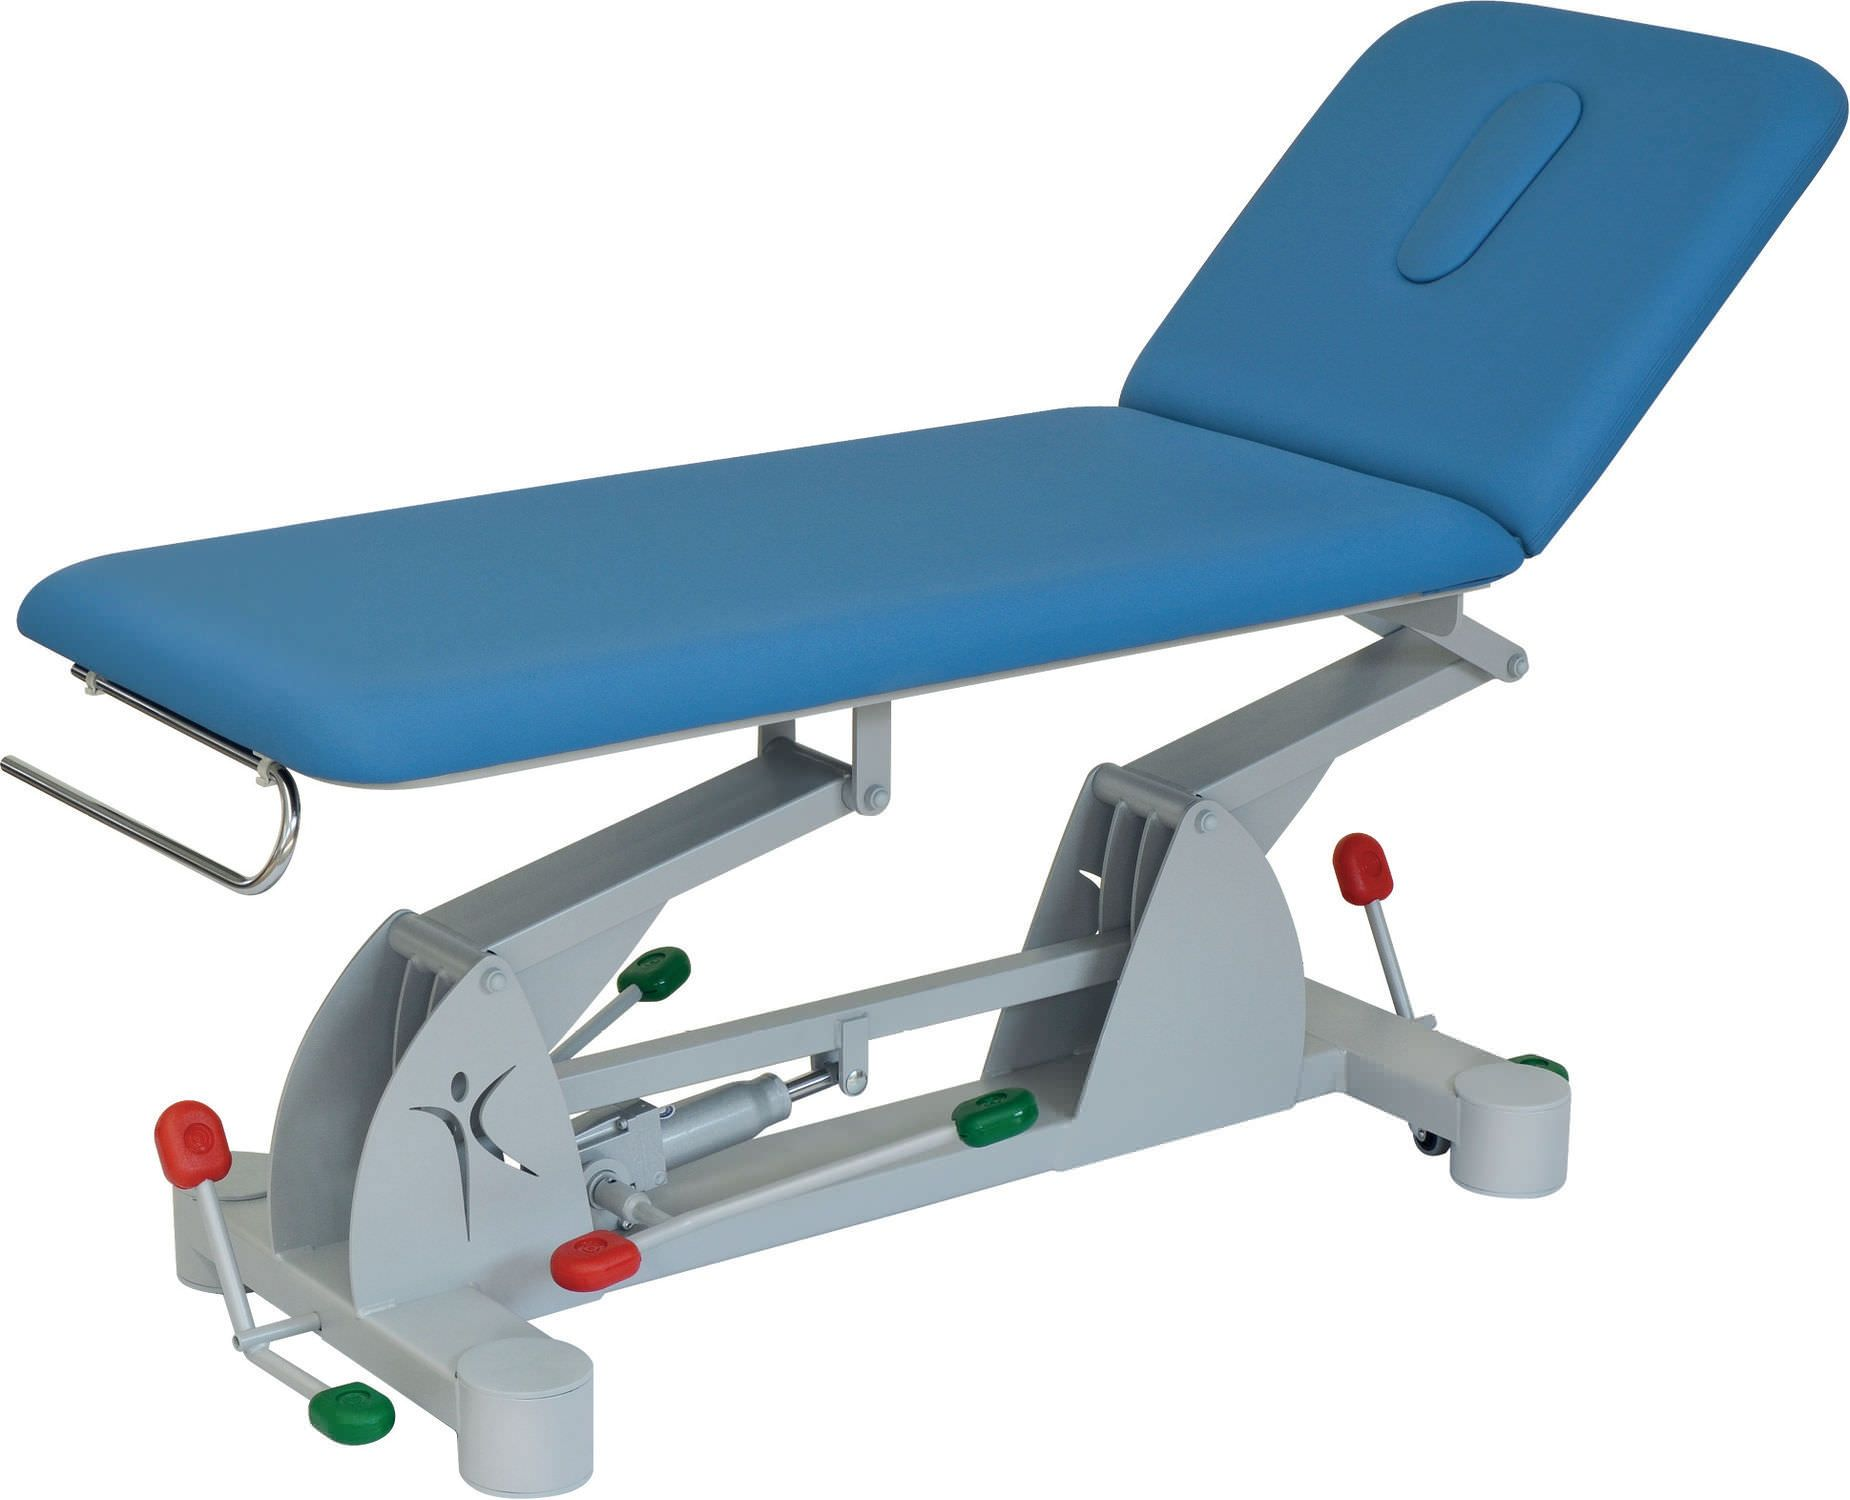 Hydraulic Massage Table Height Adjustable 2 Section 14900